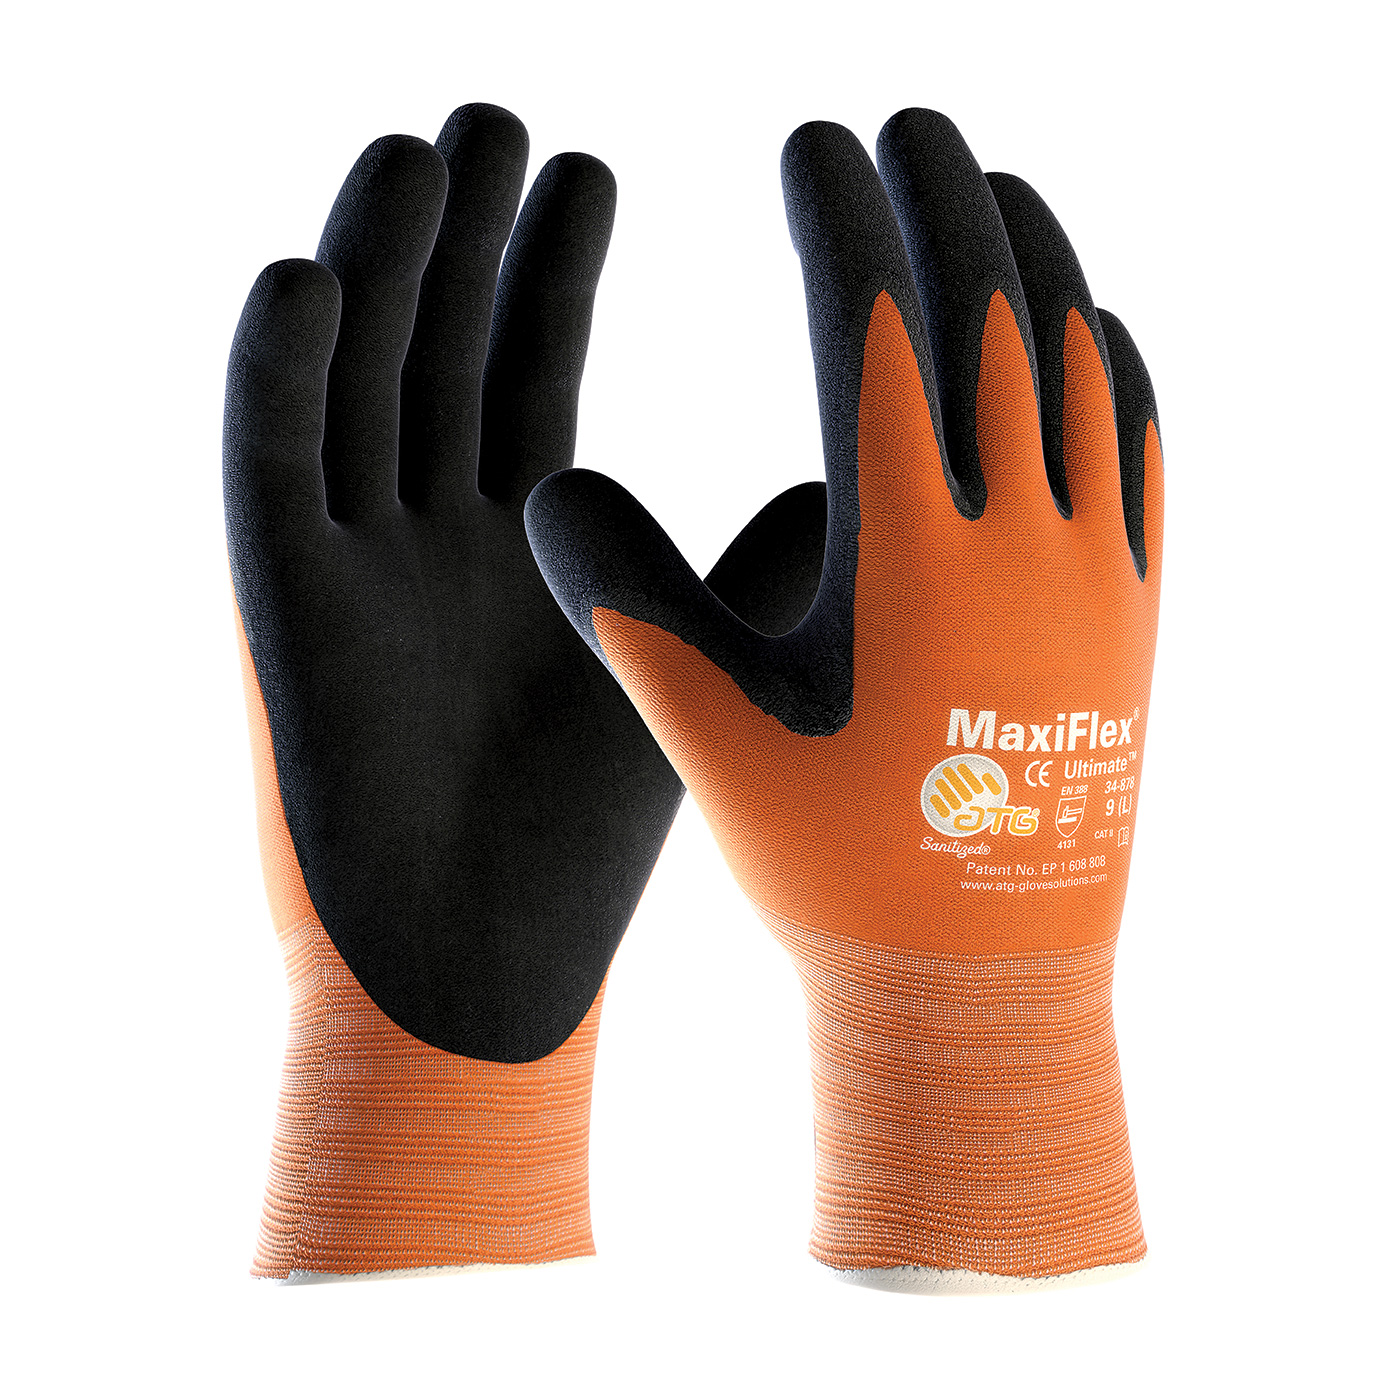 PIP MaxiFlex® Ultimate™  Hi-Vis Seamless Knit Nylon Glove with Nitrile Coated MicroFoam Grip on Palm & Fingers #34-8014